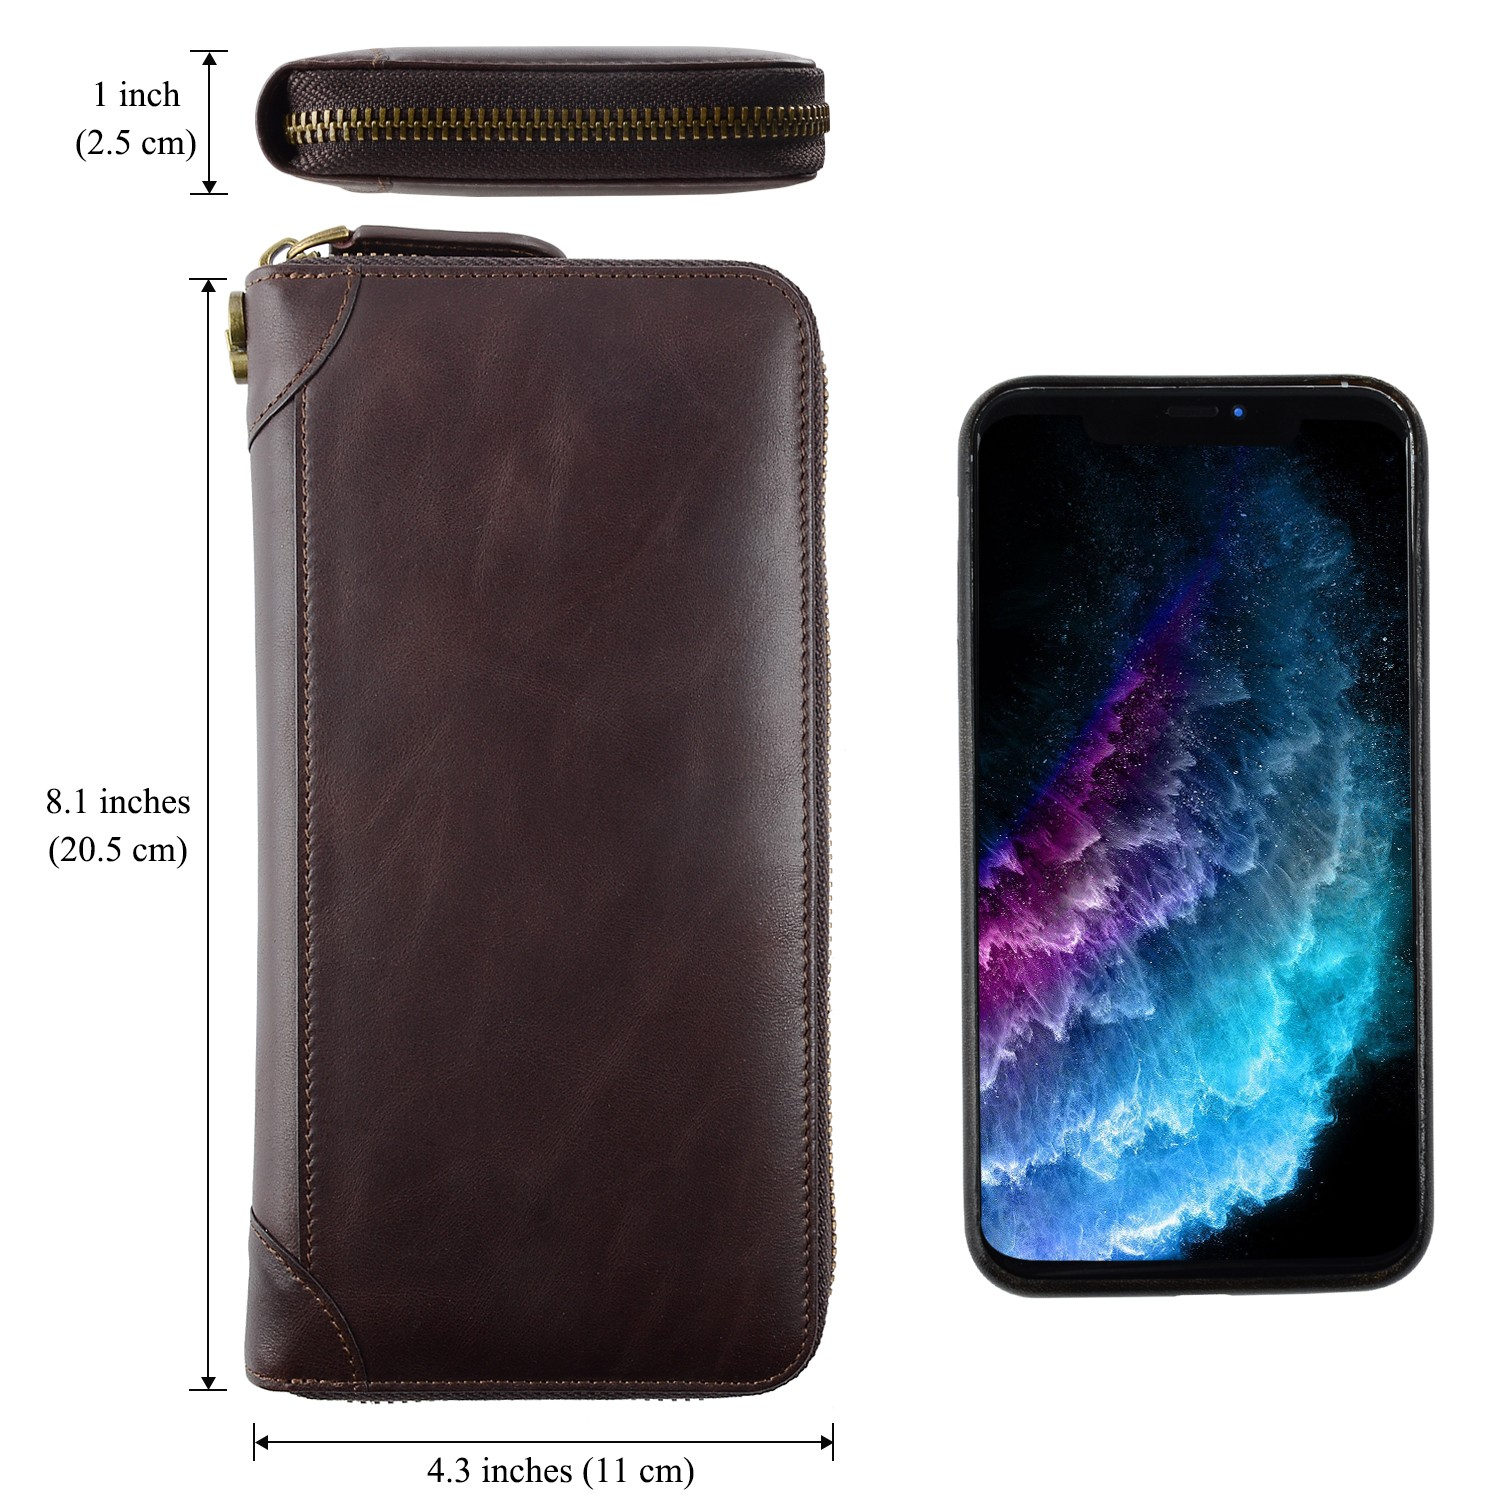 AIVI convenient leather card wallet factory for iphone 7/7 plus-6